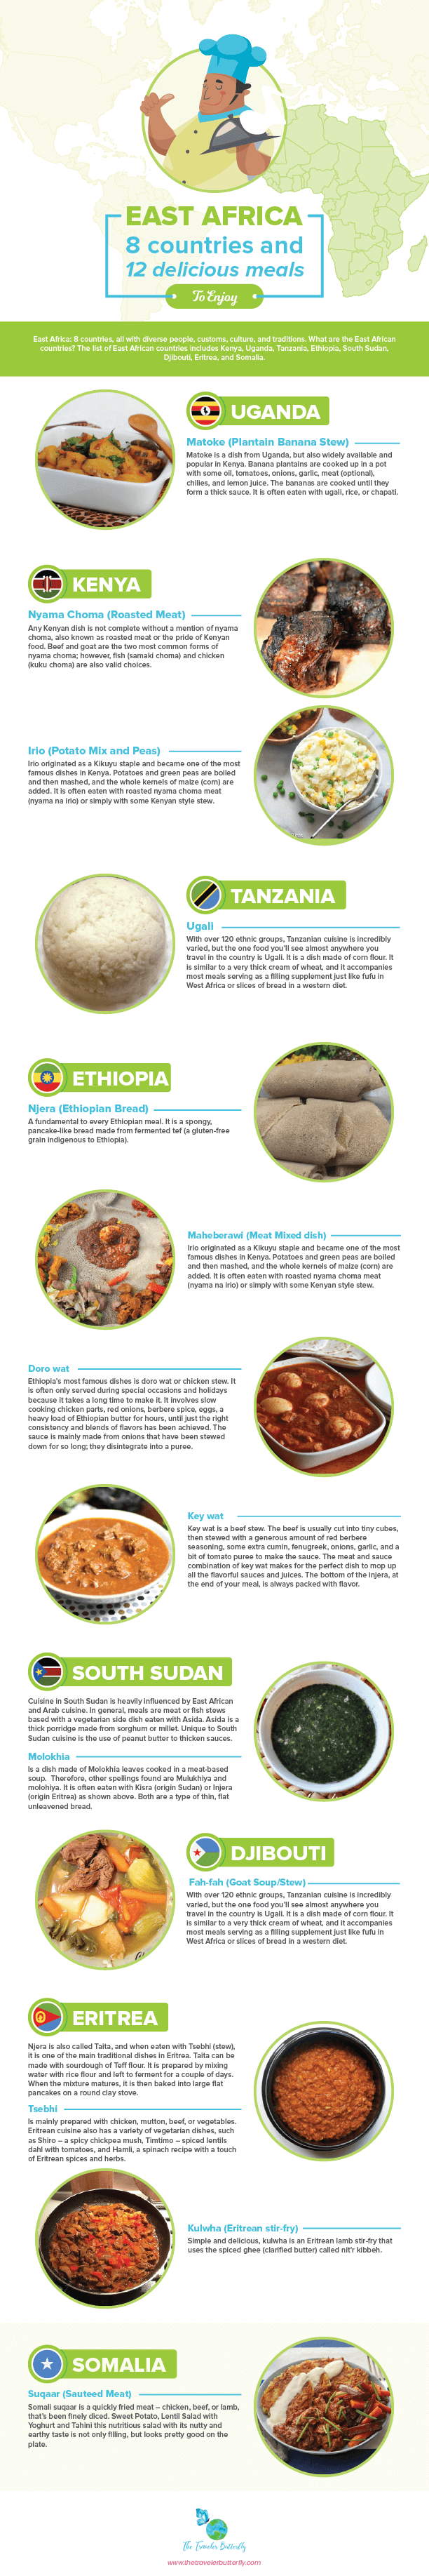 12 Delicious Meals From East Africa